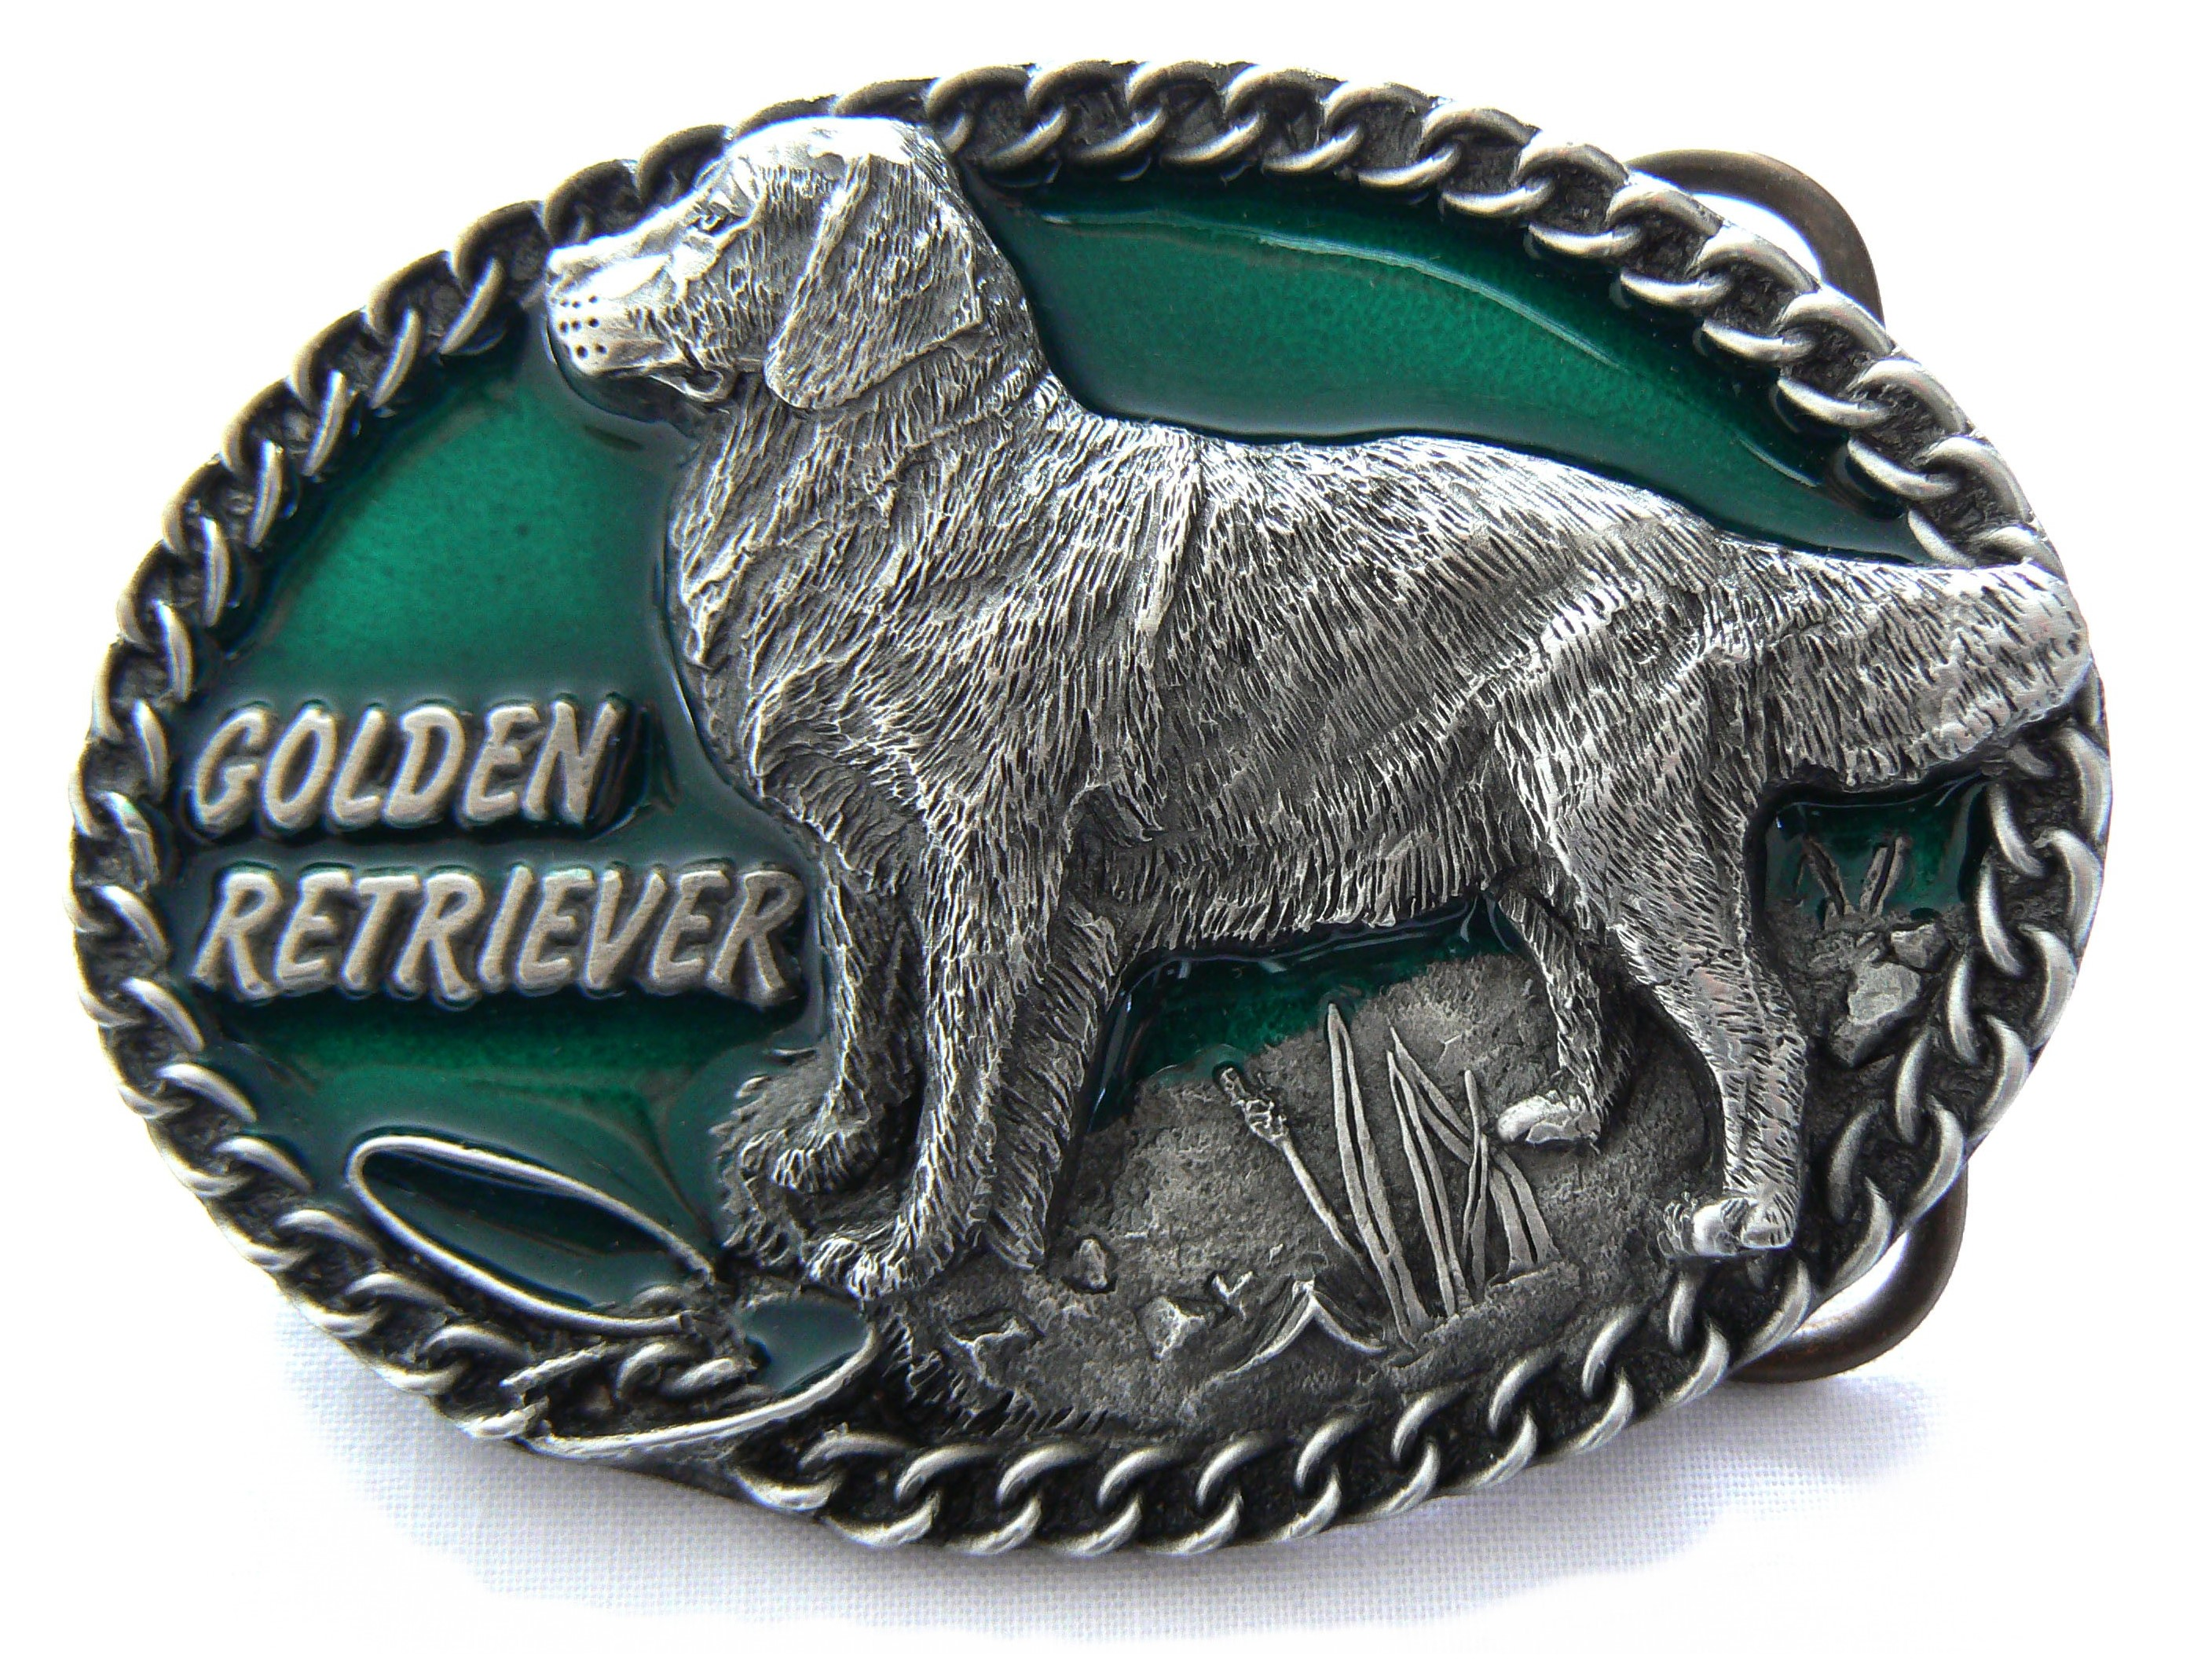 Golden Retriever Buckle